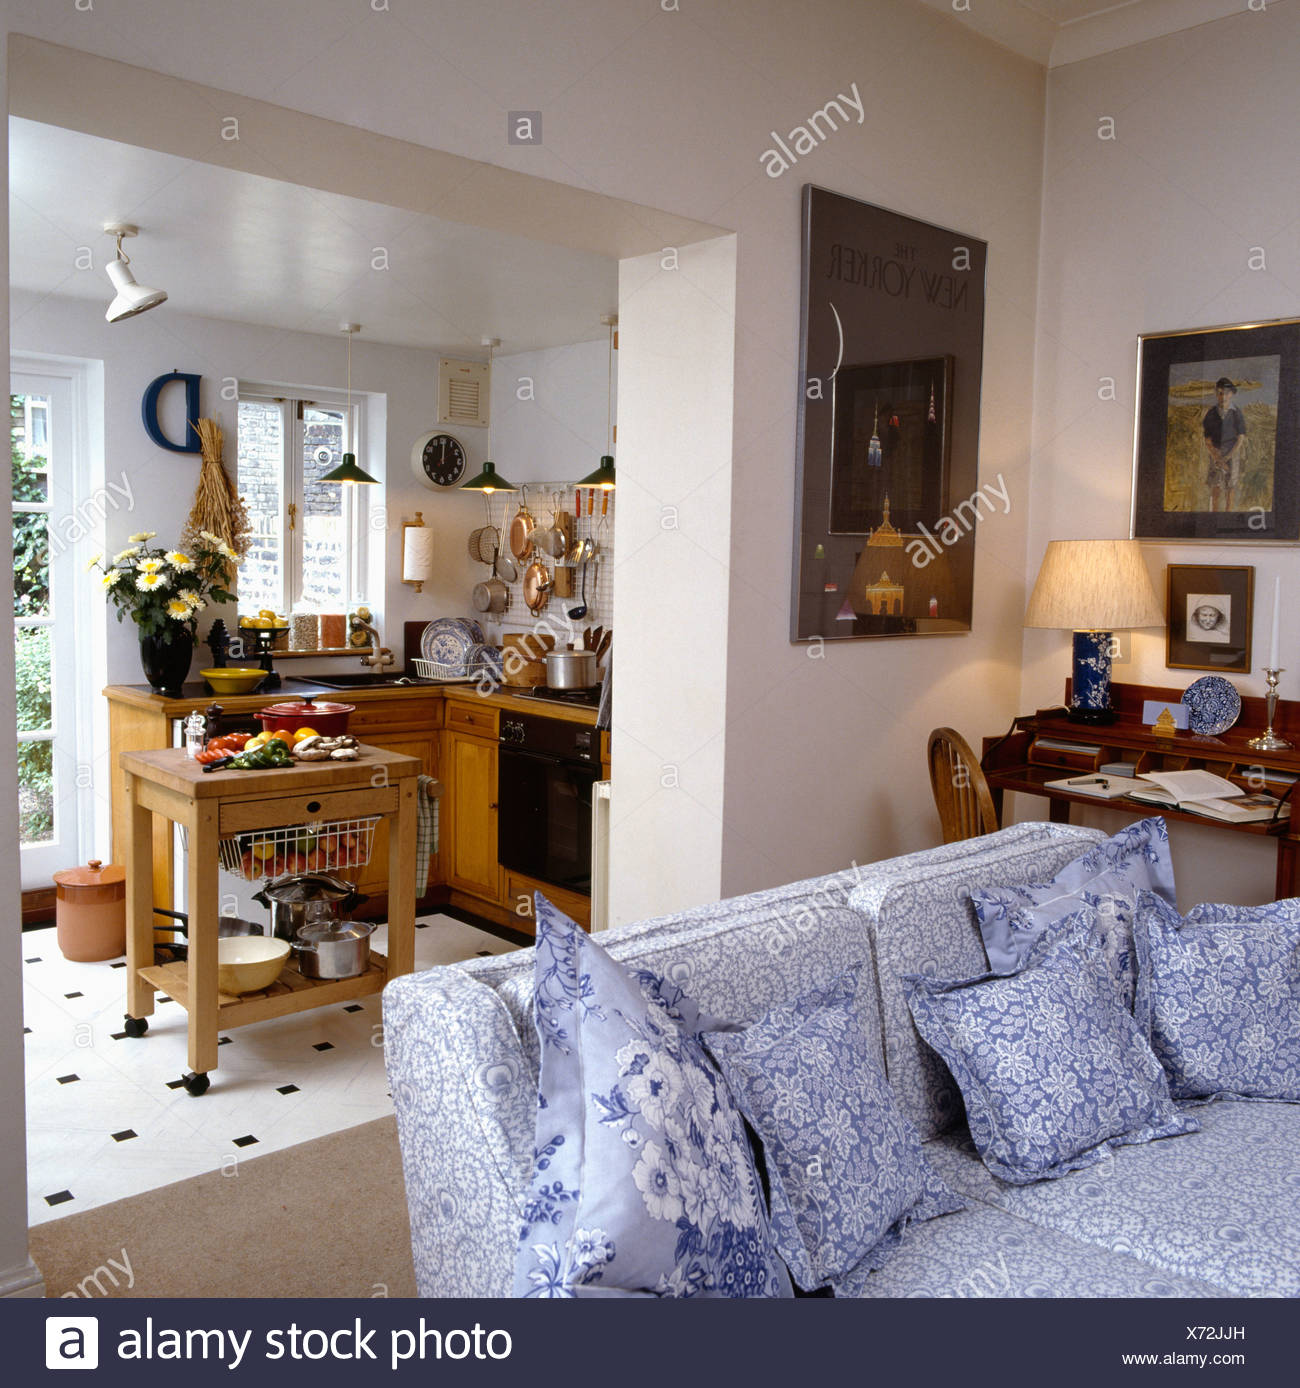 Blue And White Floral Patterned Settee In Small Apartment With Kitchen  Extension